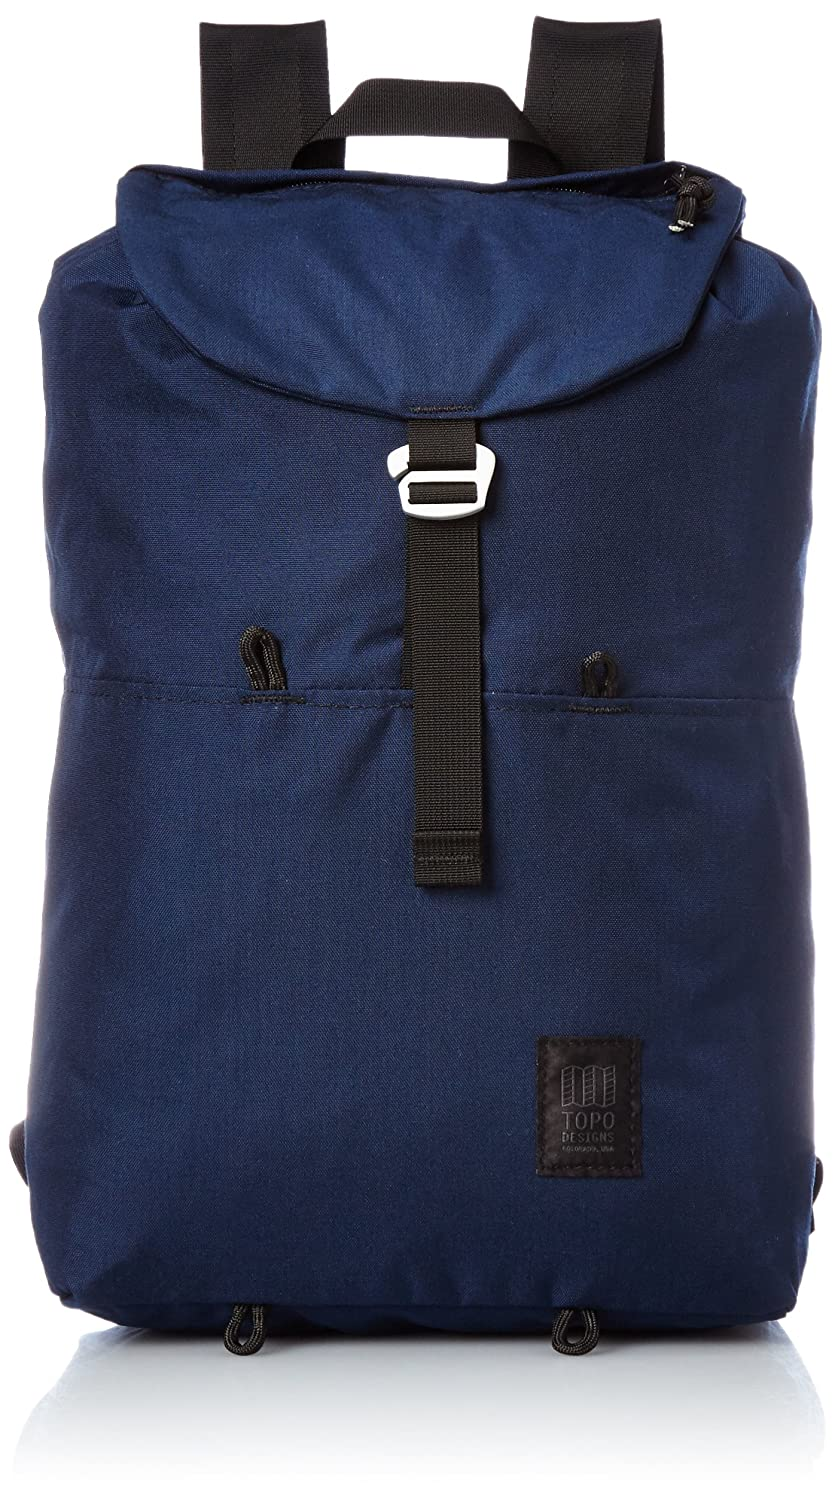 Amazon.co.jp: [ビームスボーイ] BEAMS BOY TOPO DESIGNS×BEAMS BOY / TRAIL PACK SPECIAL 13610323571 79 (MIDNIGHT/ONE SIZE): シューズ&バッグ:通販